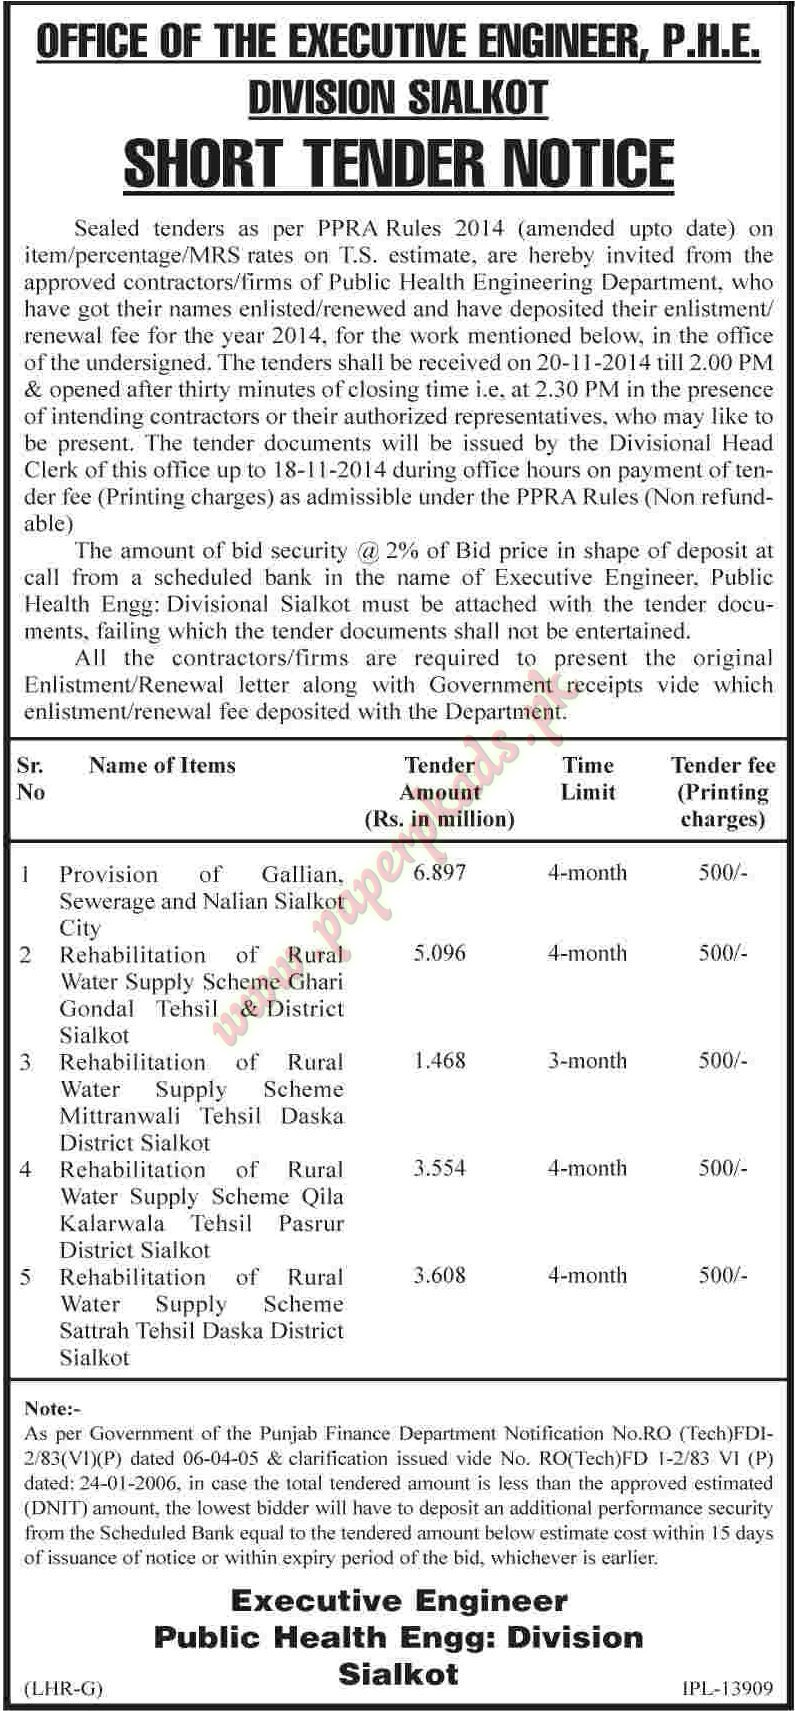 Office of the Executive Engineer PHE Division Sialkot - Dawn Tender 31 October 2014